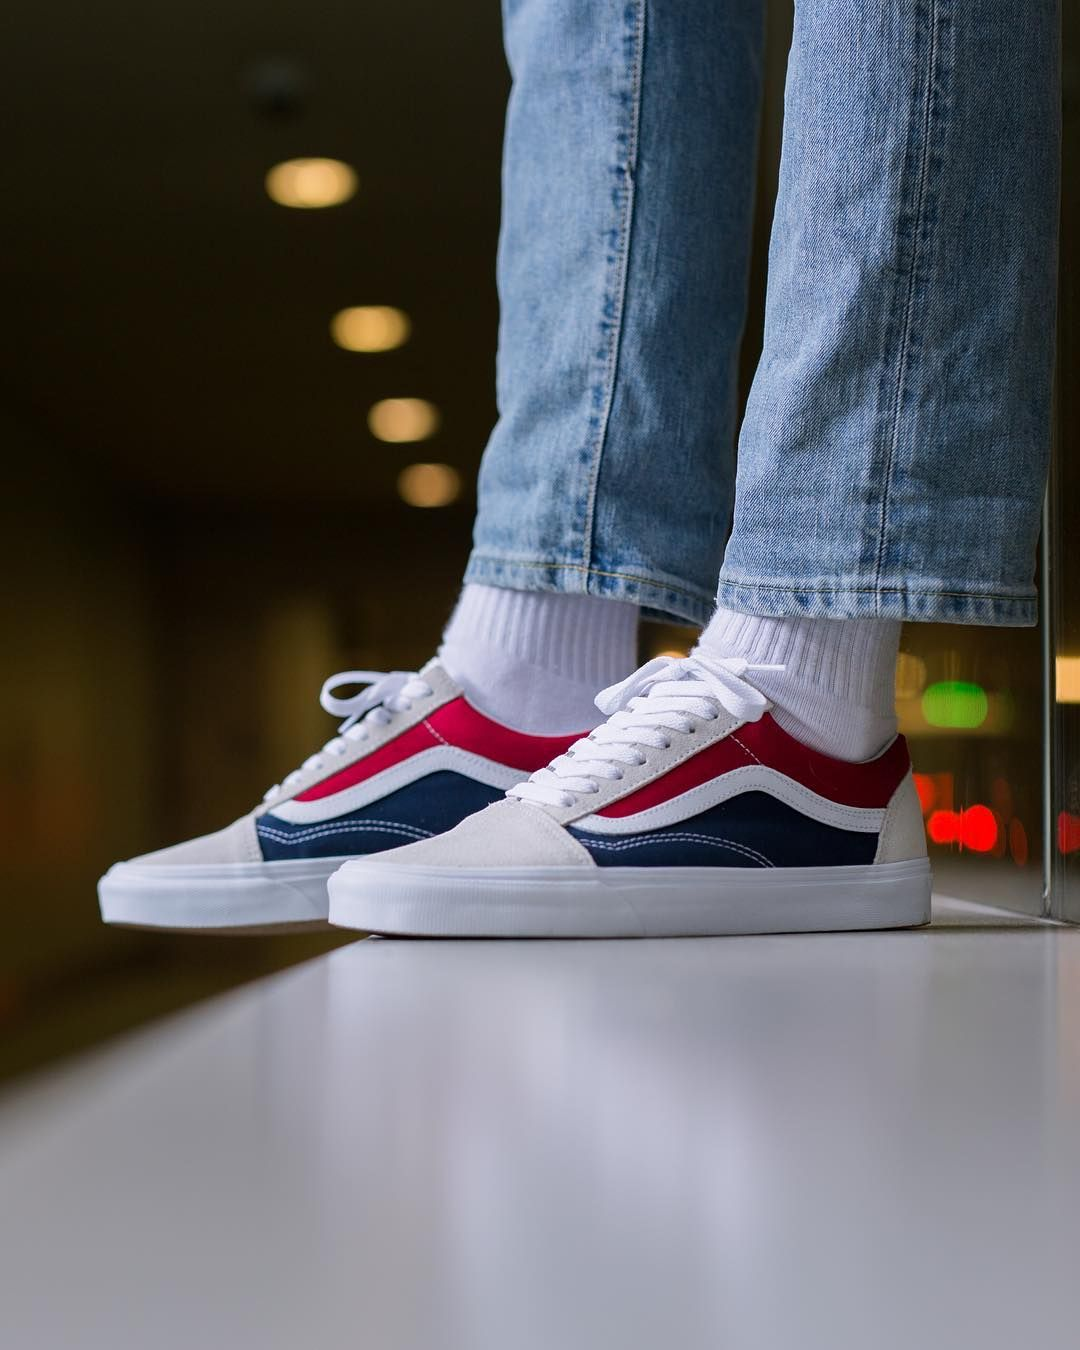 bc14824b93 Vans Old Skool - White Red Dress Blue